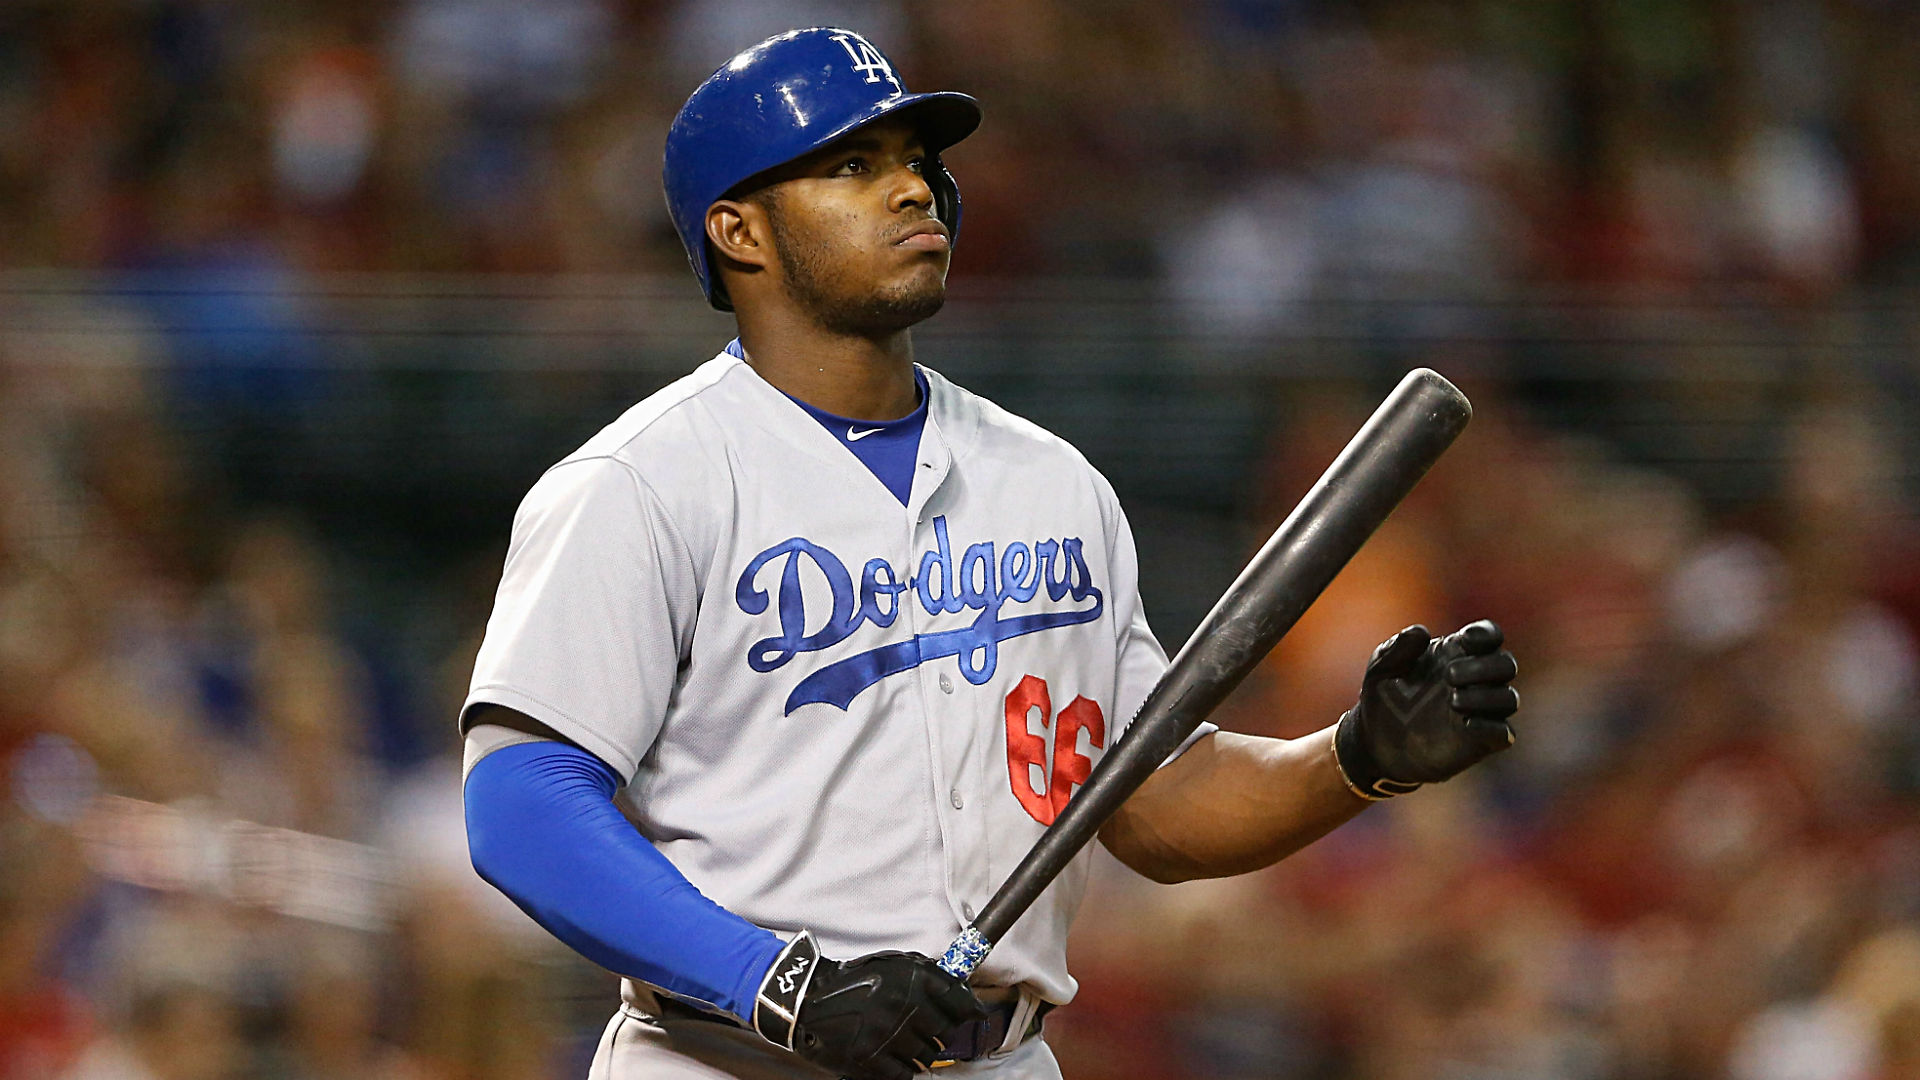 MLB Star Yasiel Puig Sued For Sexual Battery At Lakers Game